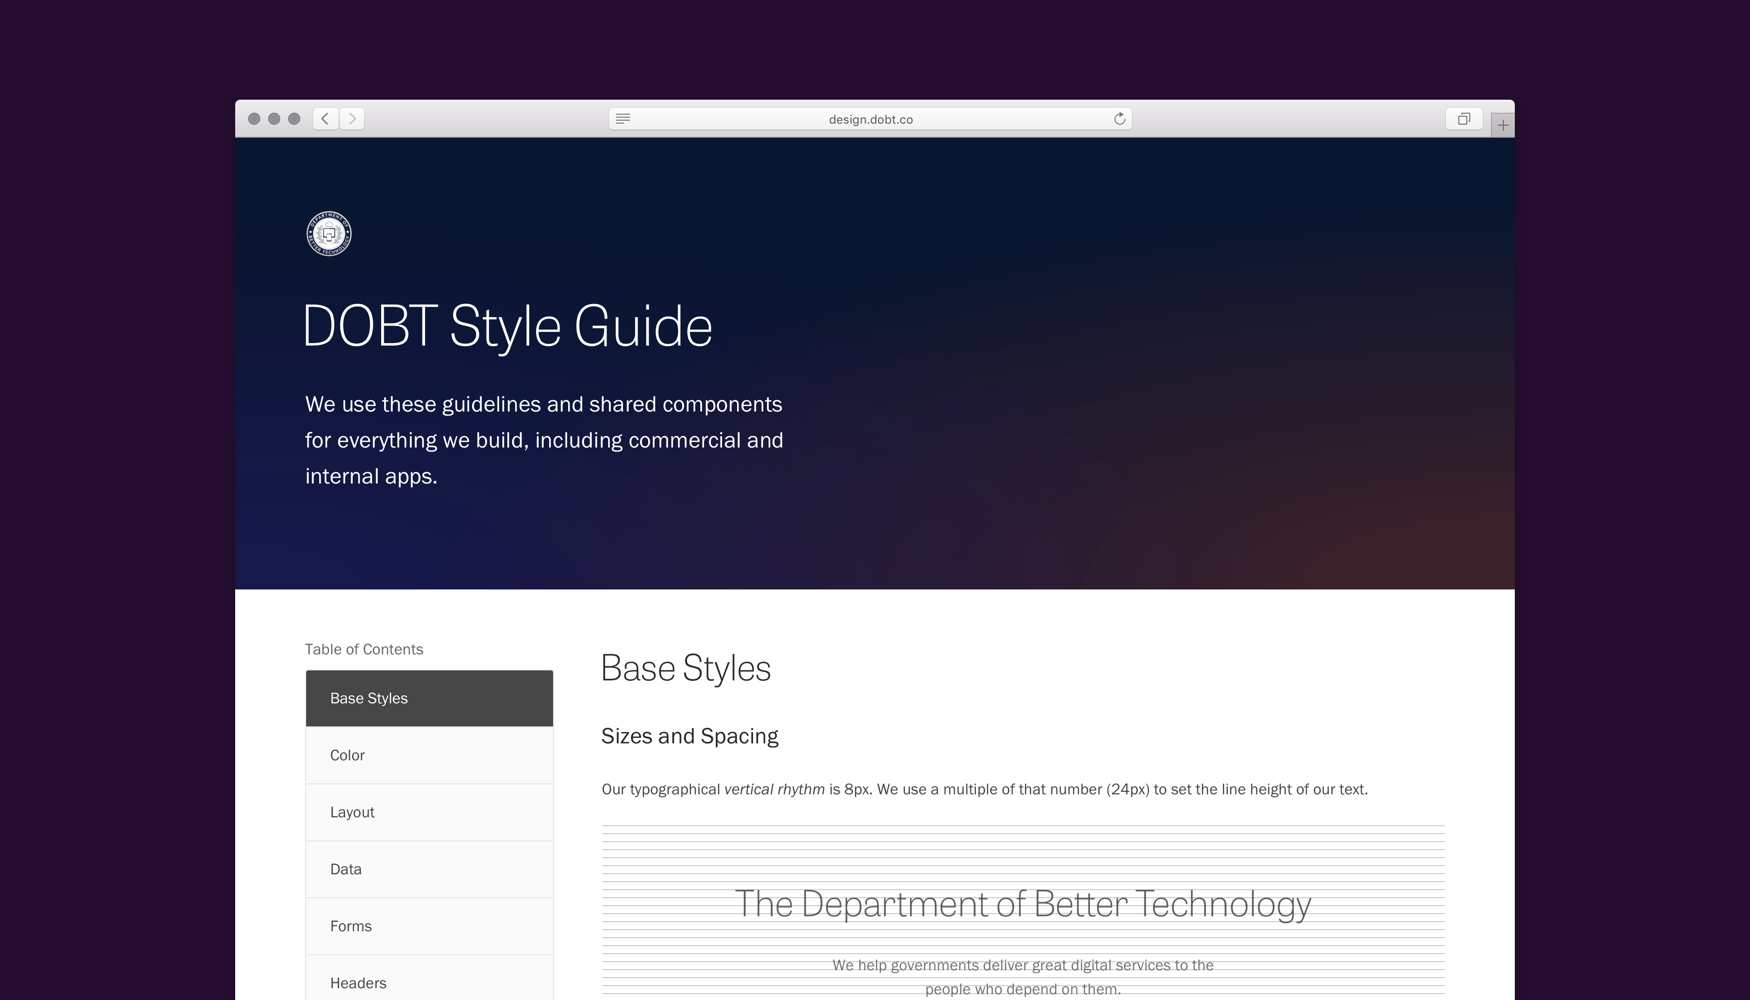 The homepage of the DOBT Style Guide